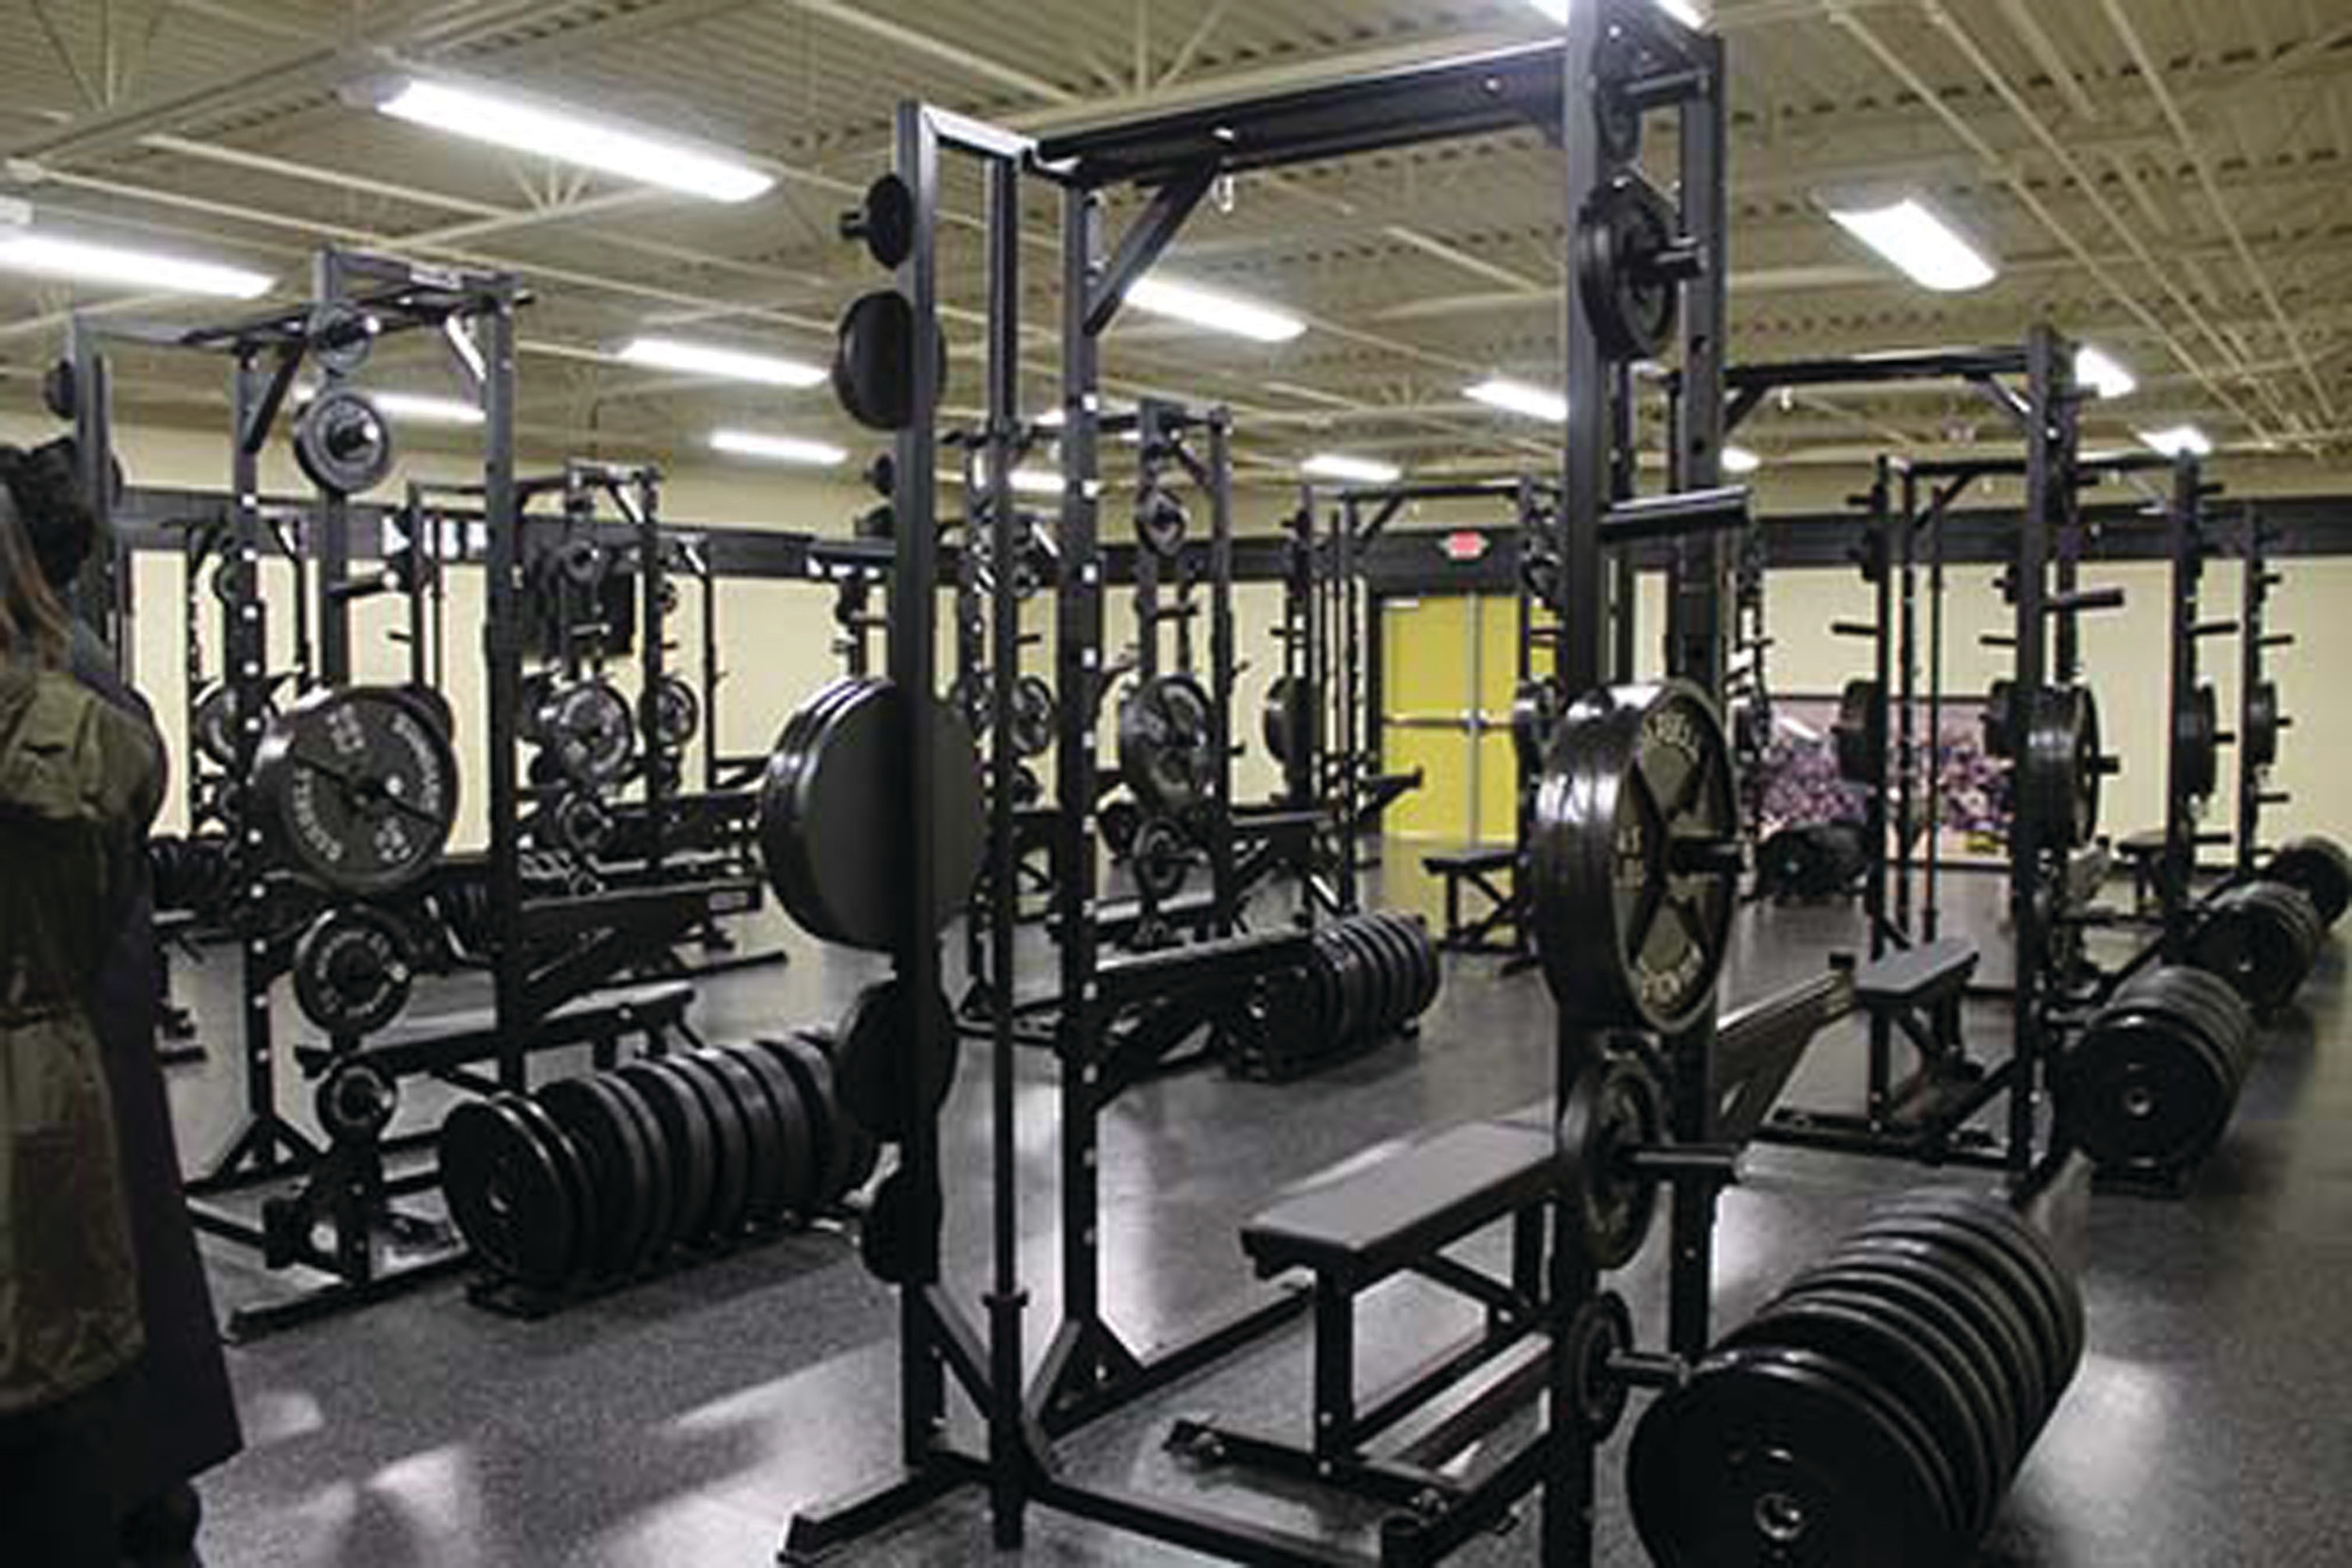 The entire Monarch varsity football team will be able to lift weights at one time in the new weight room at The Monarch Field House, located behind Manning High School and adjacent to Ramsey Field. Before building the field house, the varsity team would need to split up into three groups to lift weights.